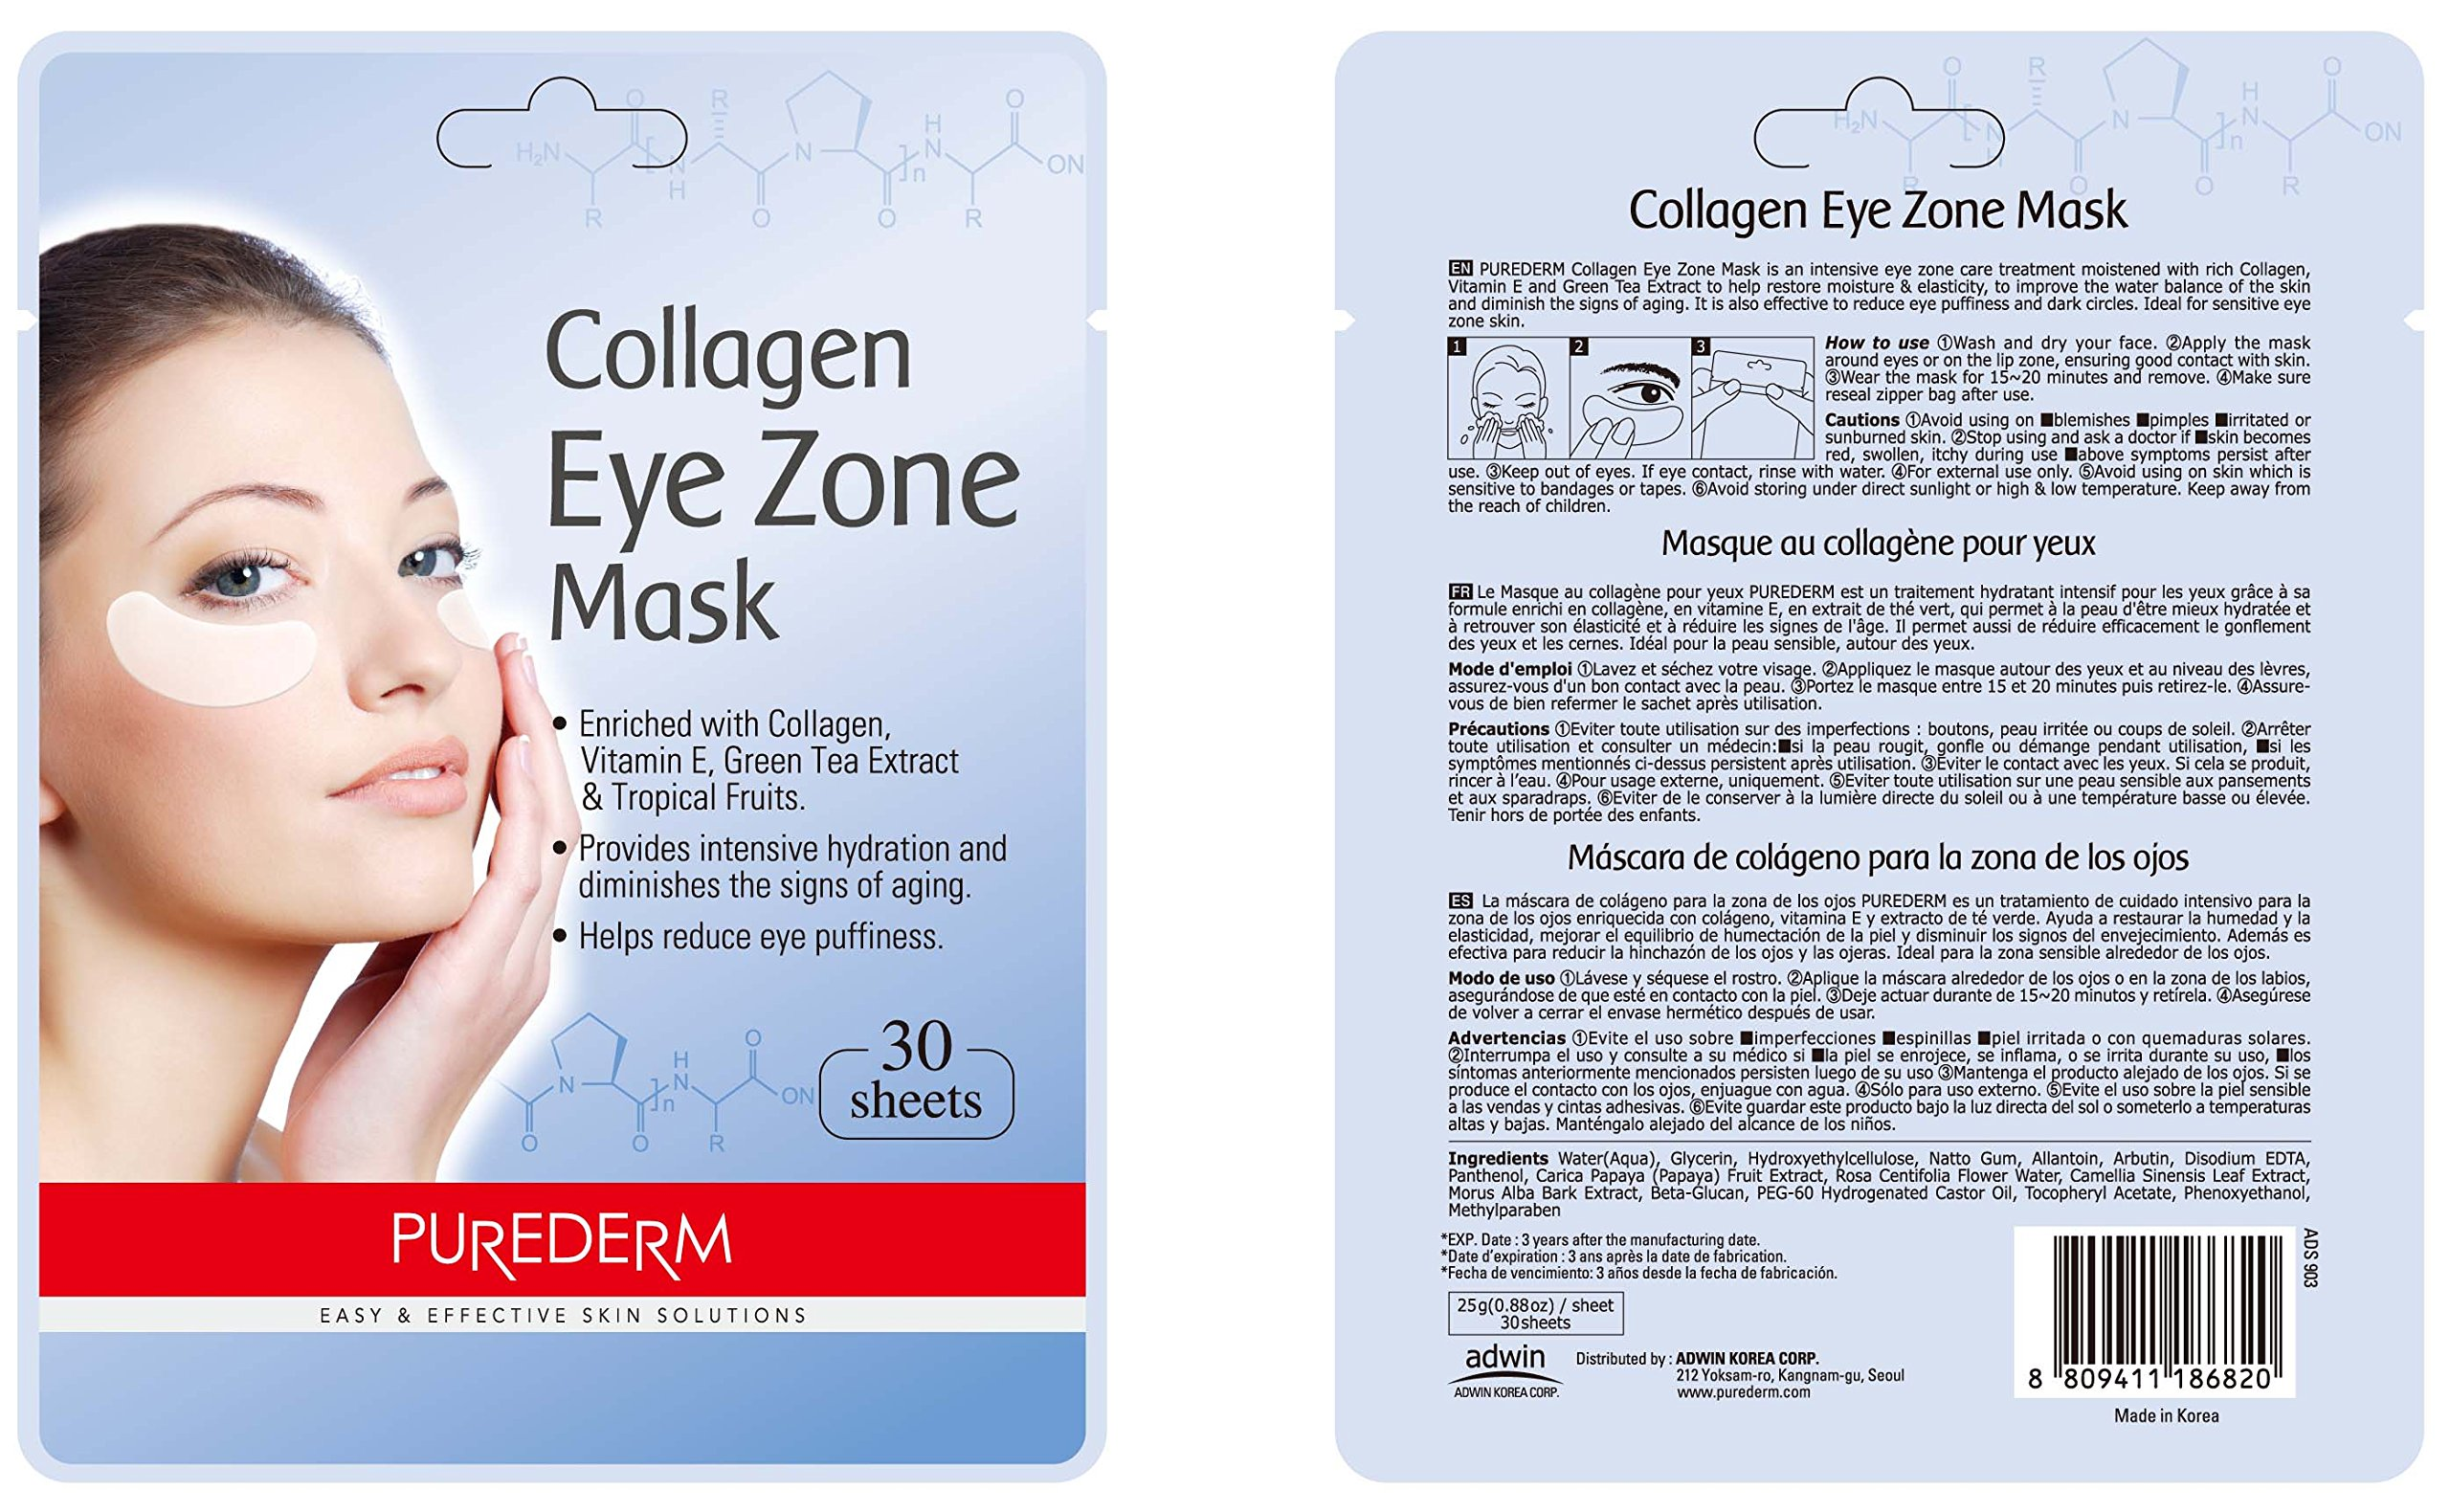 PUREDERM Collagen Eye Zone Mask Pad Patches - Wrinkle Care, Dark Circles Whitening (50 Pack (1500 Sheet))